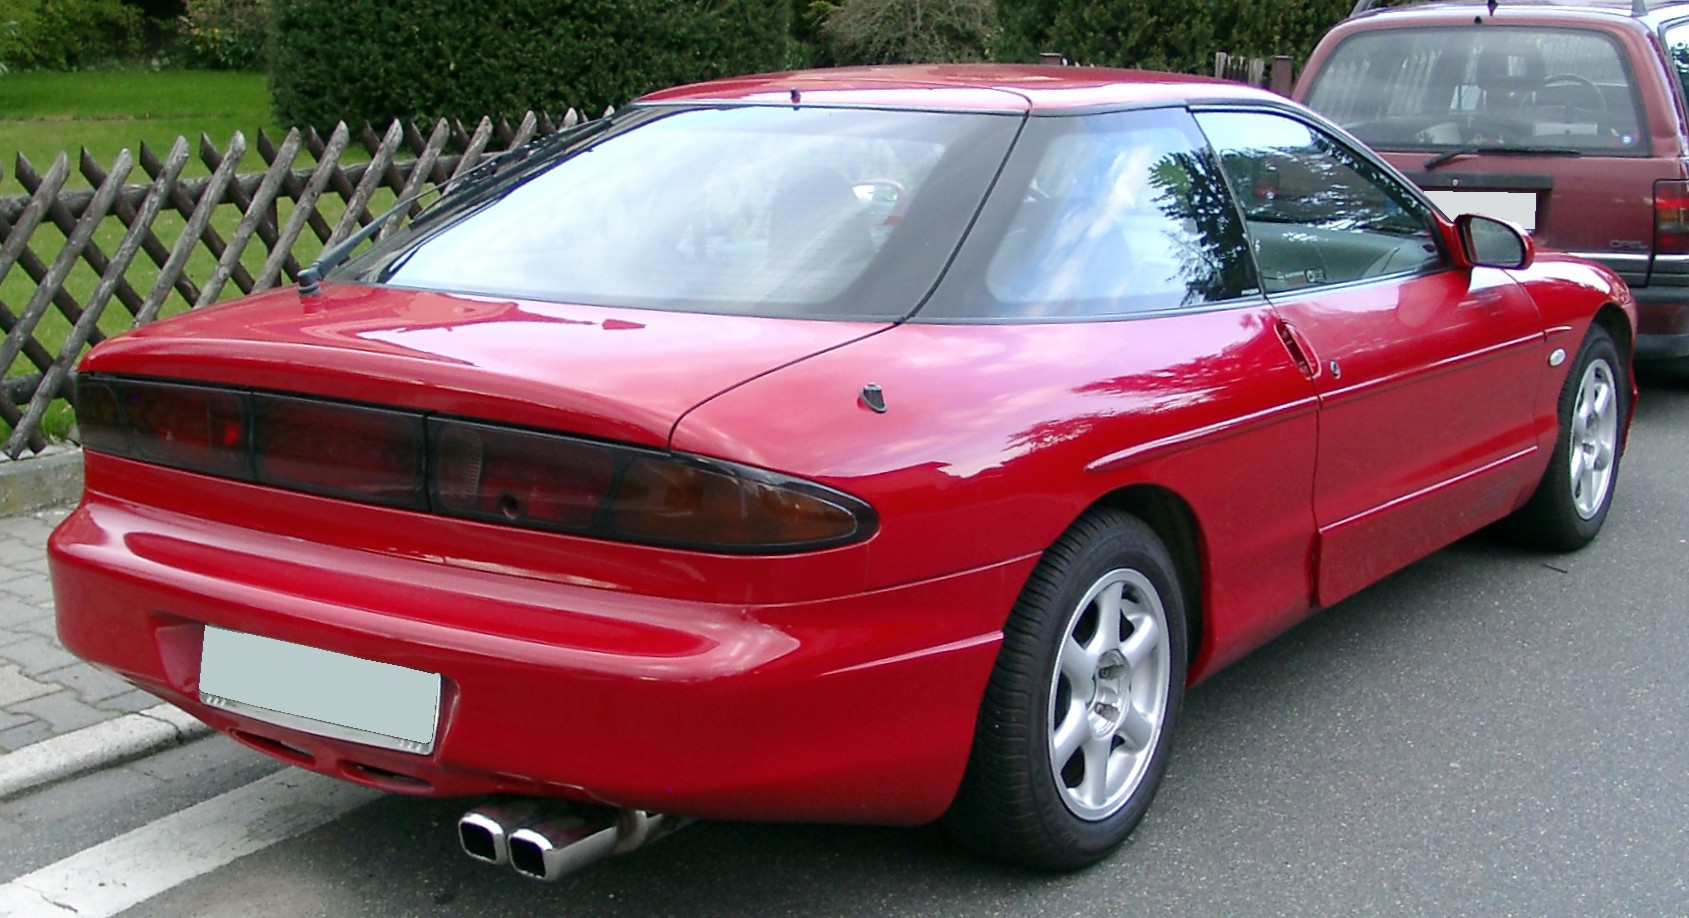 Ford probe. Photos and comments. www.picautos.com